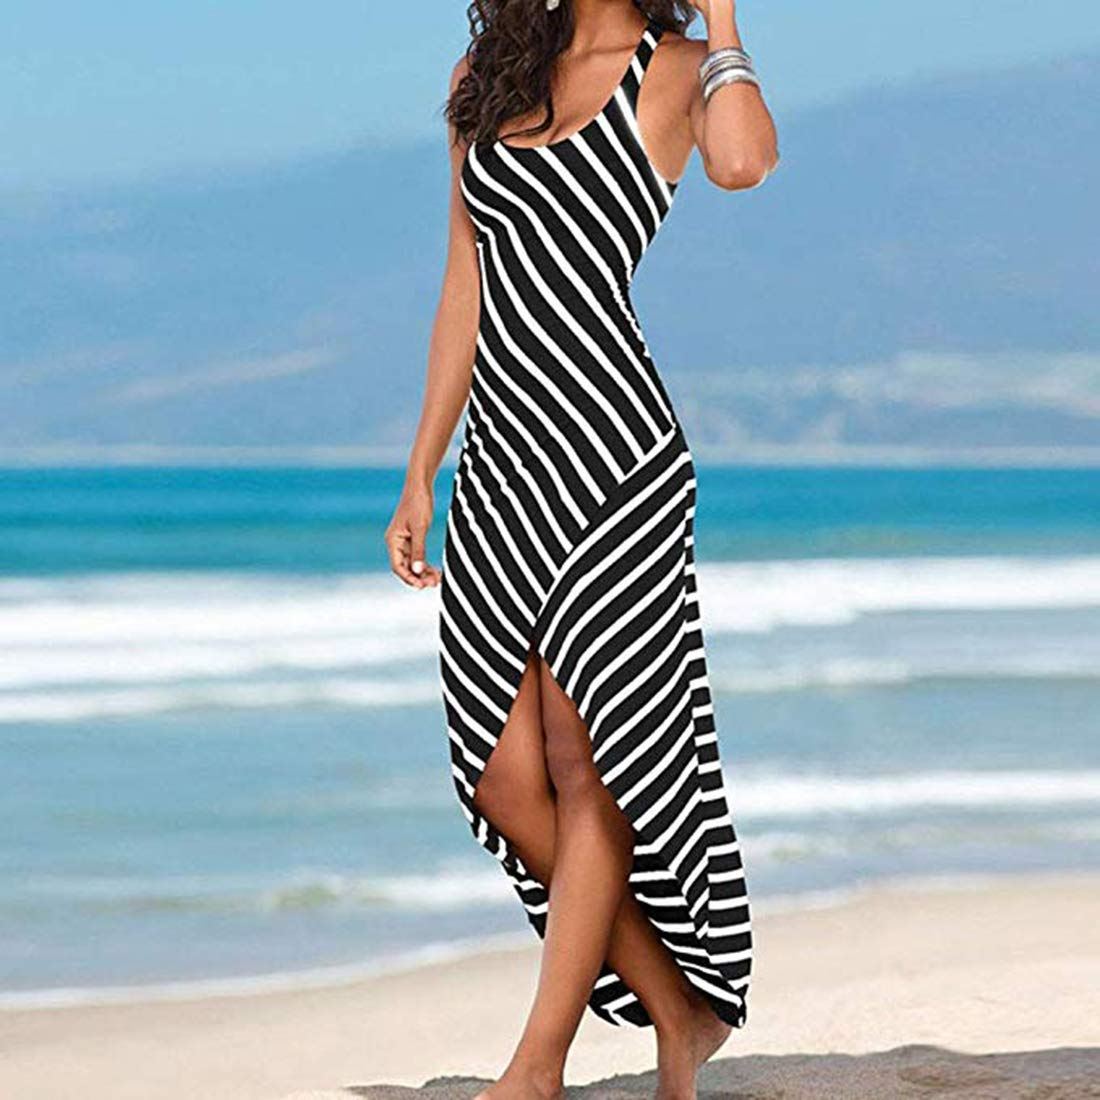 WESIDOM Maxi Dress for Women,Striped Sexy Sleeveless O-Neck Ankle-Length Casual Sundress, Party Long Dresses for Women Black by WESIDOM (Image #3)